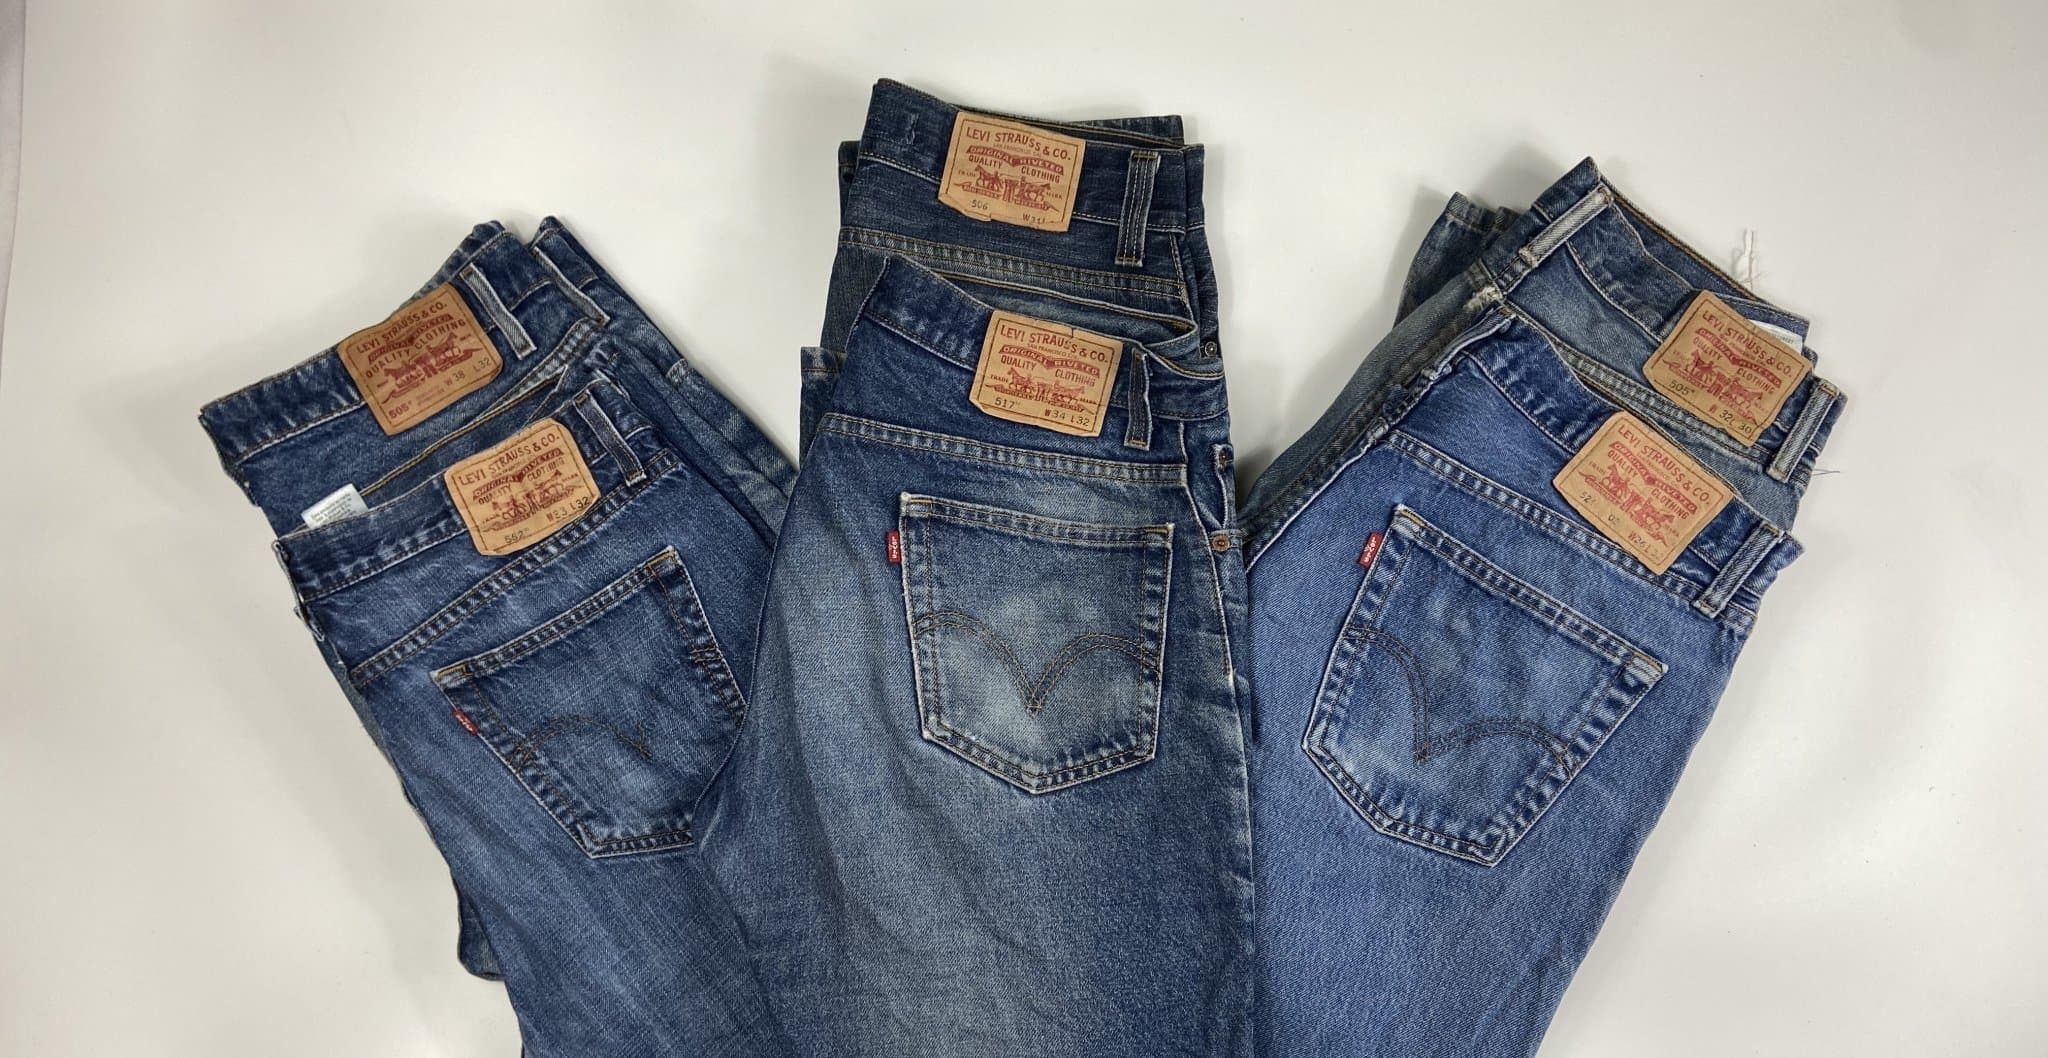 Vintage Levi's Classic Blue Zip Fly Jeans W36 L34 (BE5) - Discounted Deals UK